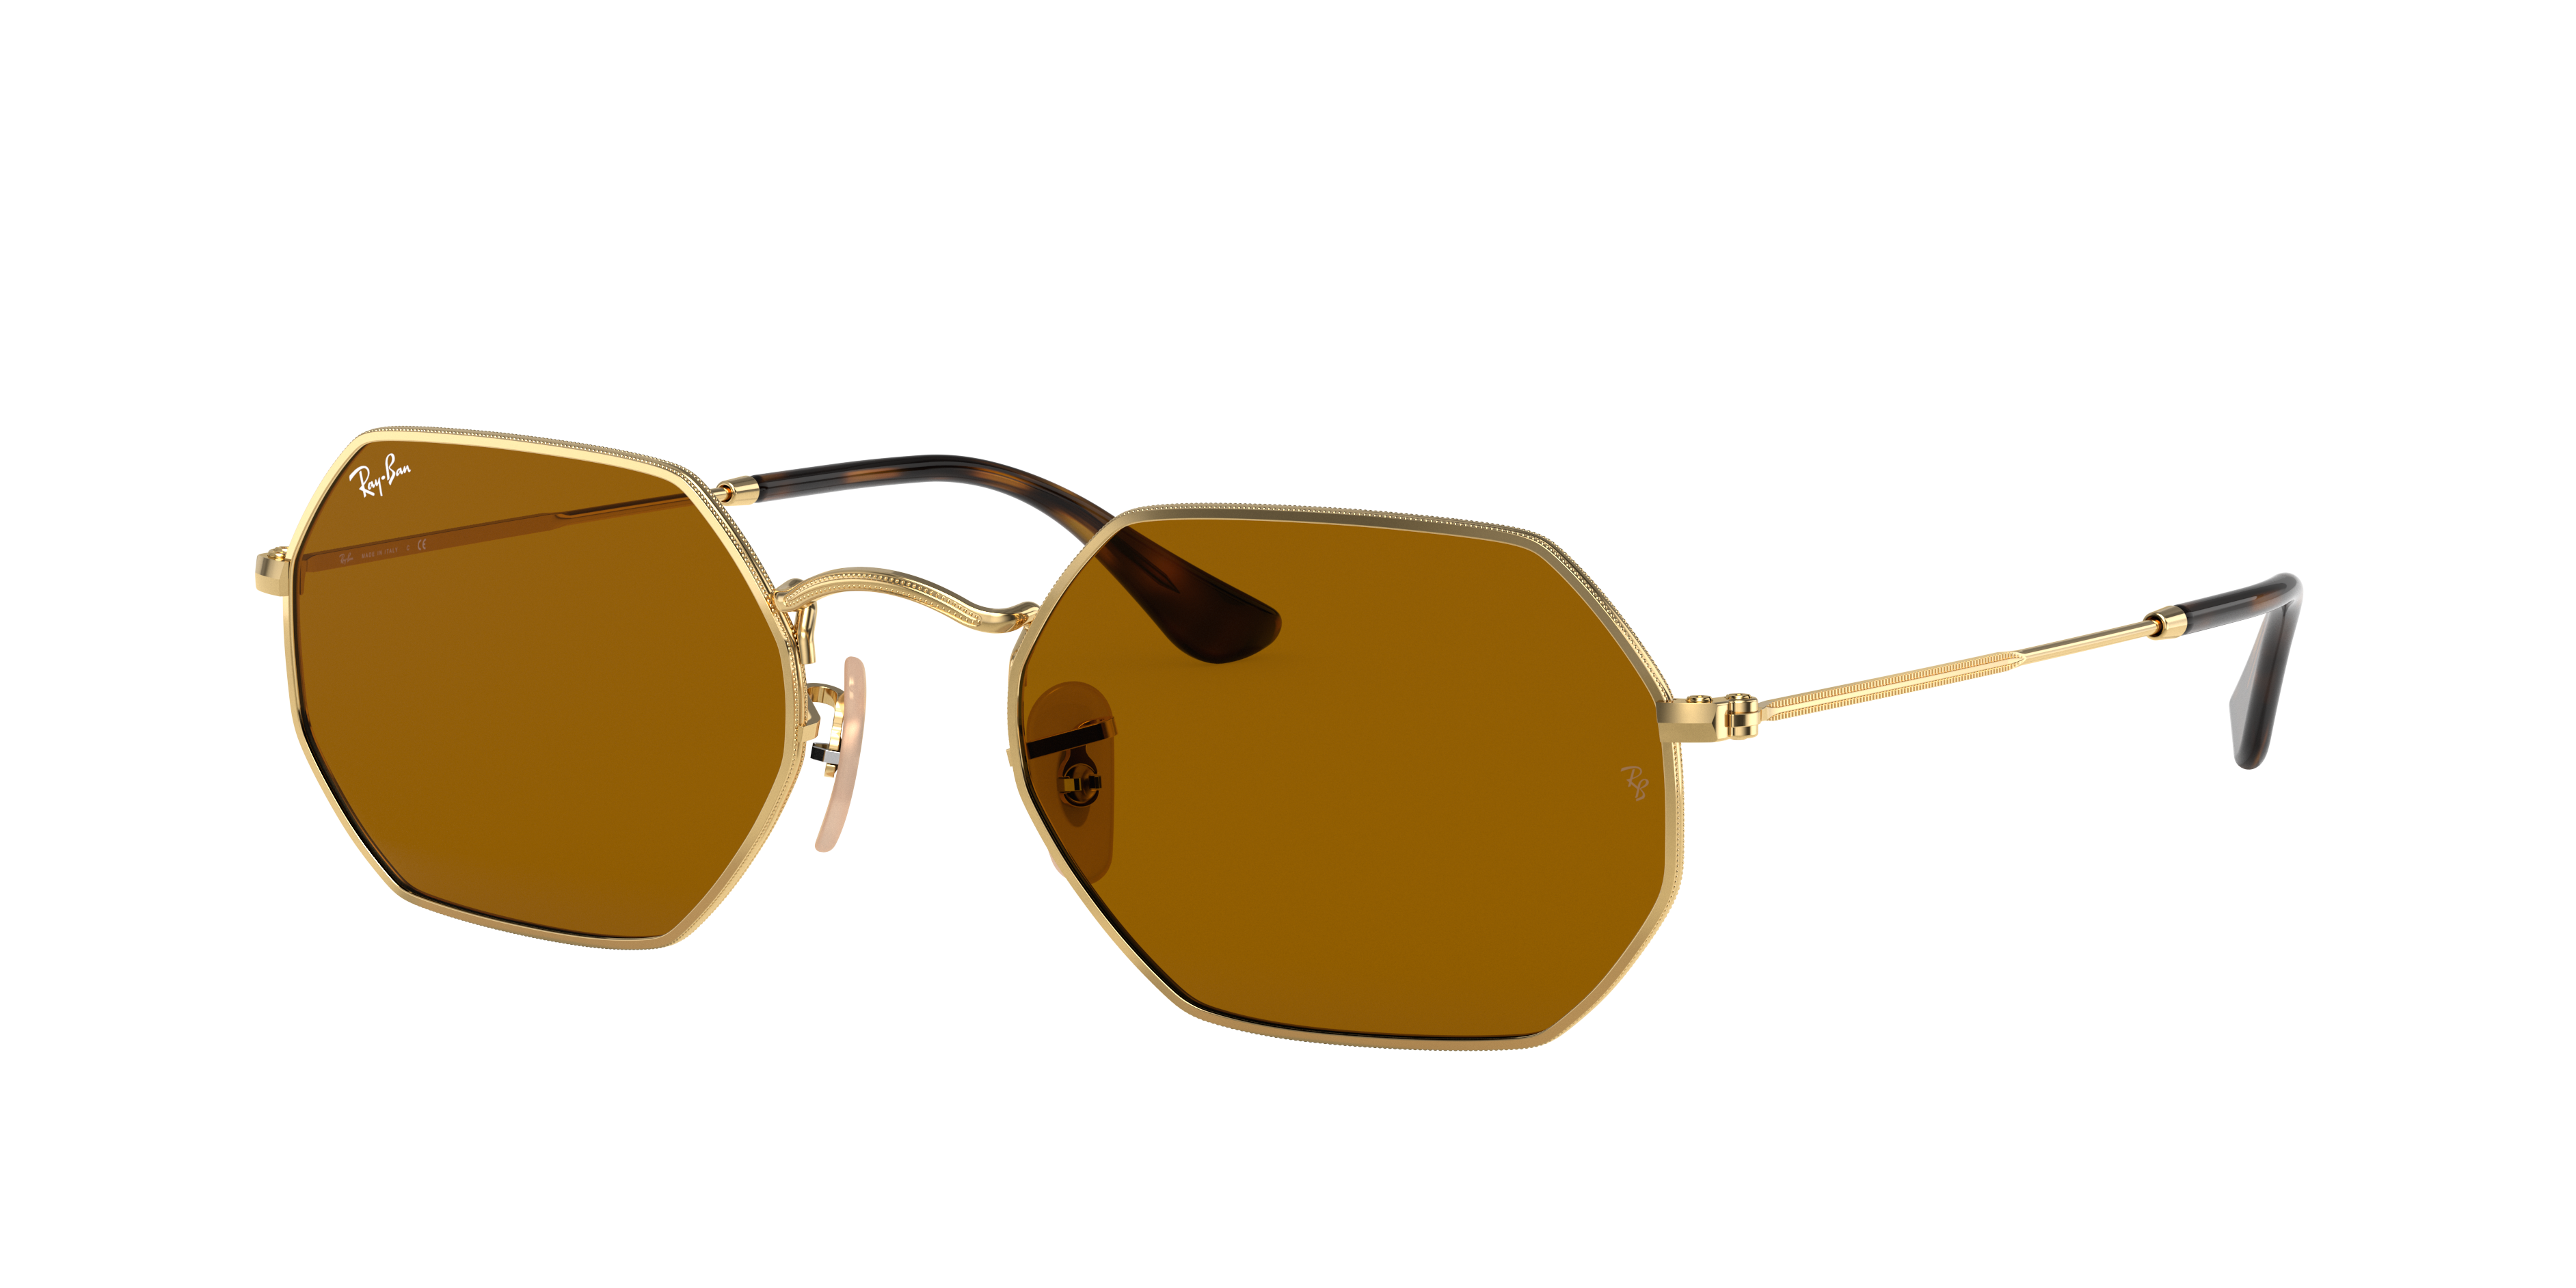 Ray-Ban Octagonal Classic Gold, Brown Lenses - RB3556N